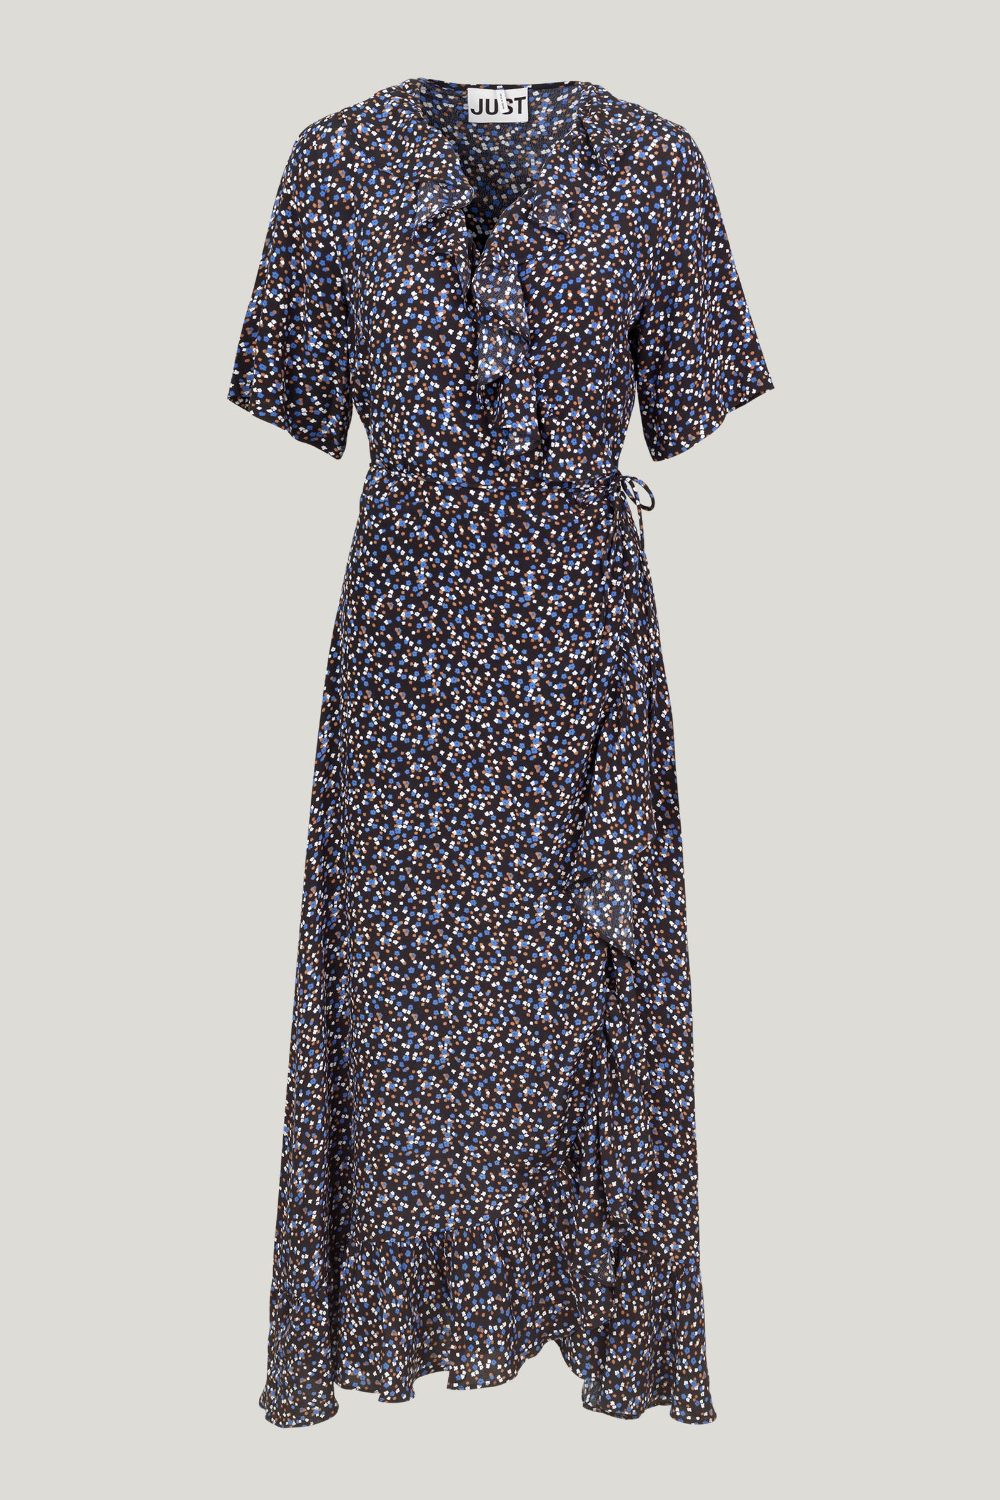 Just Female Lassy Maxi Wrap Dress in Little Flower Print